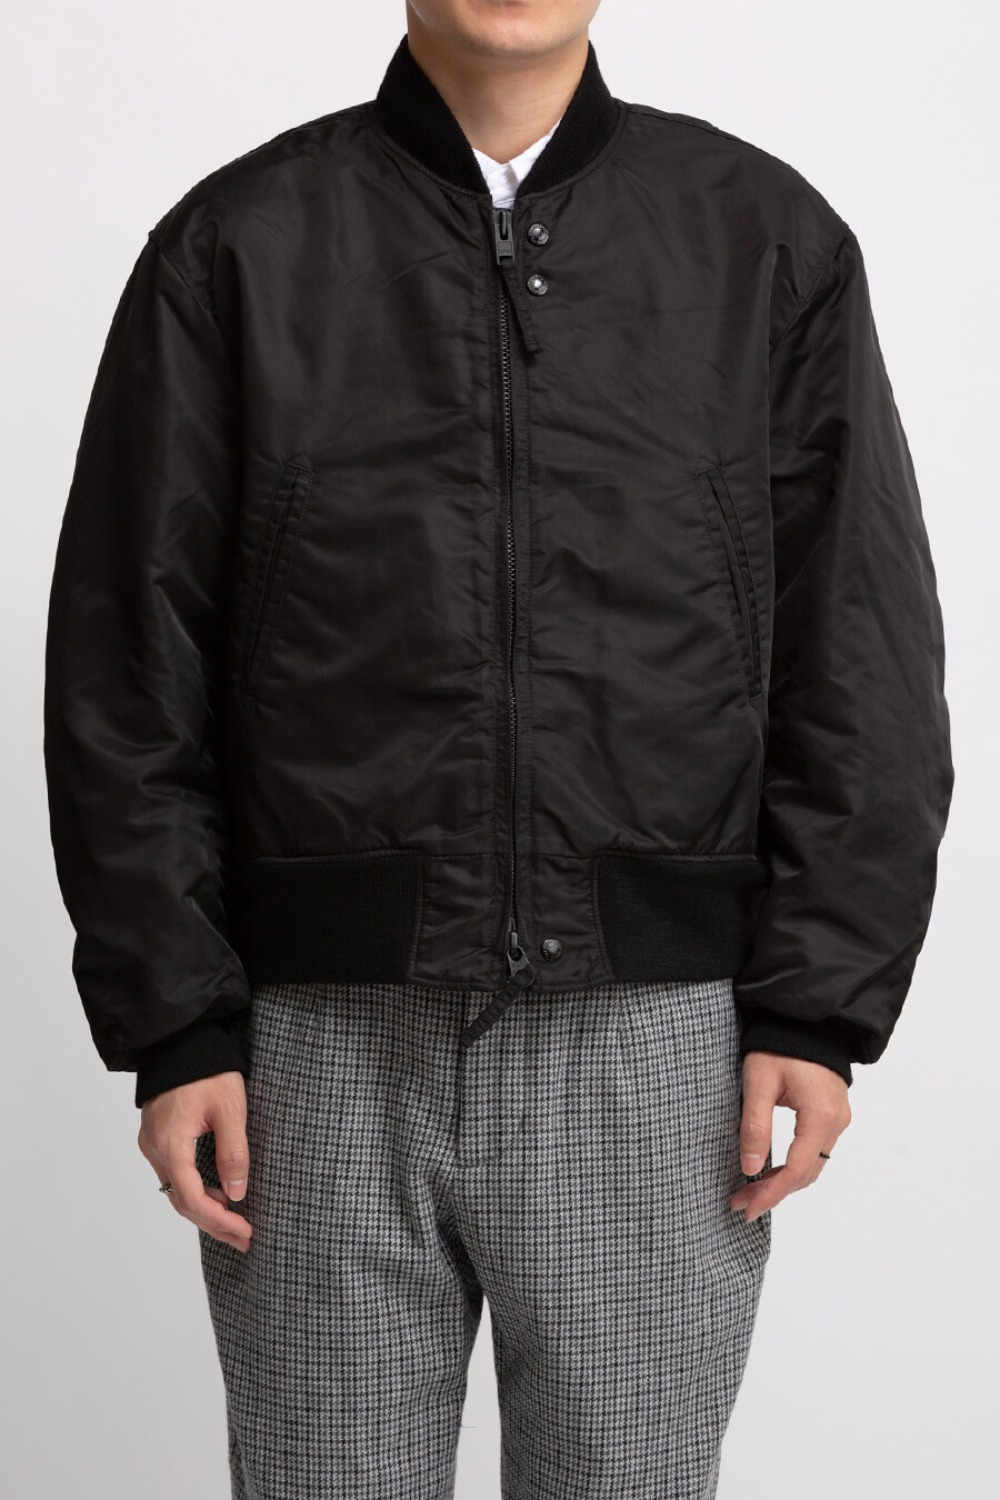 SVR JACKET BLACK FLIGHT SATIN NYLON